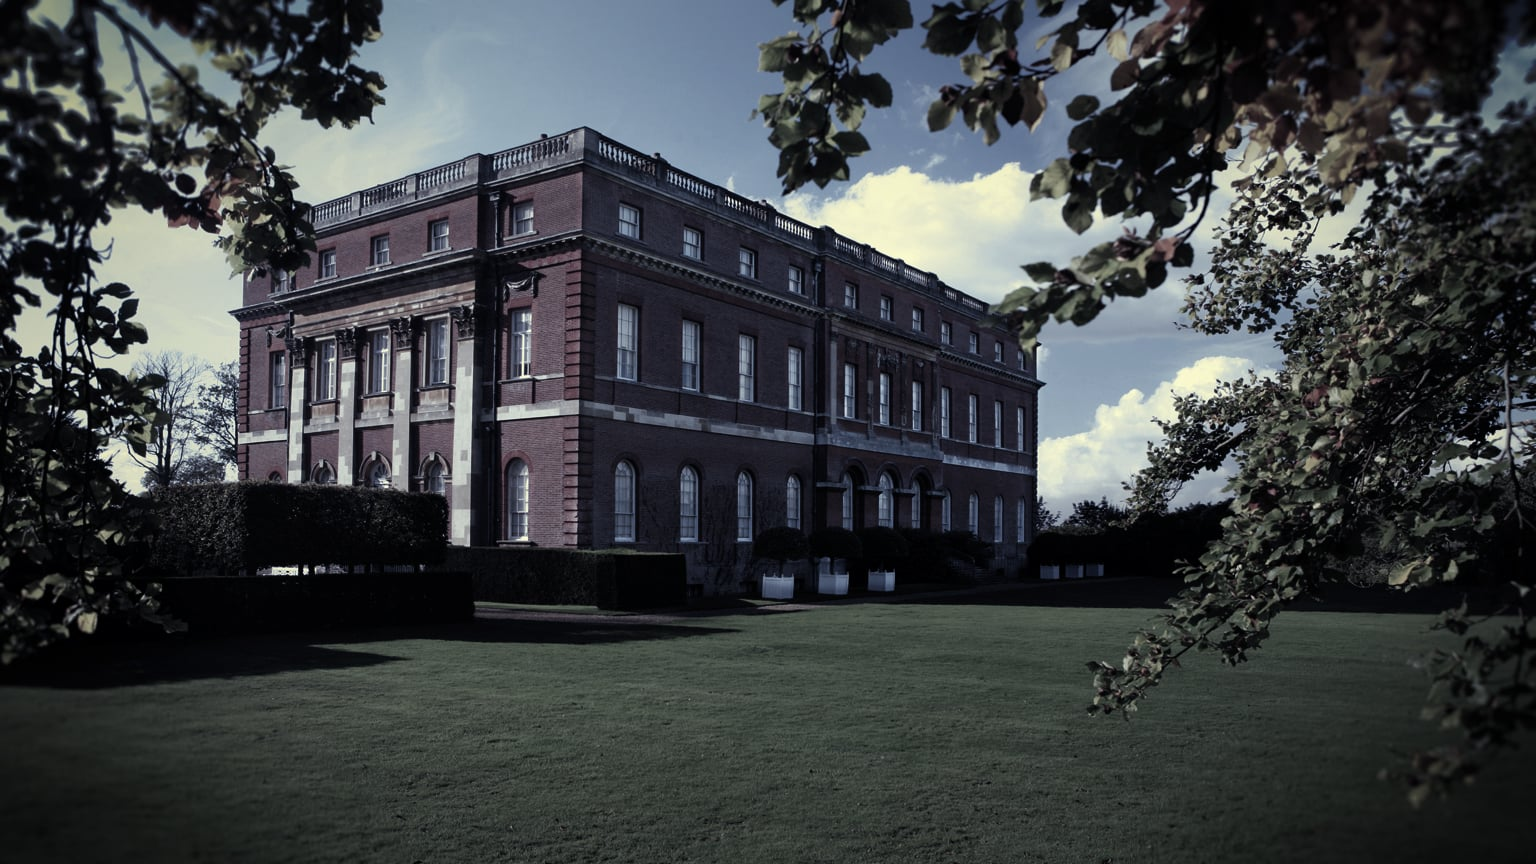 7) Clandon Park, Surrey - Free entry with National Art Pass